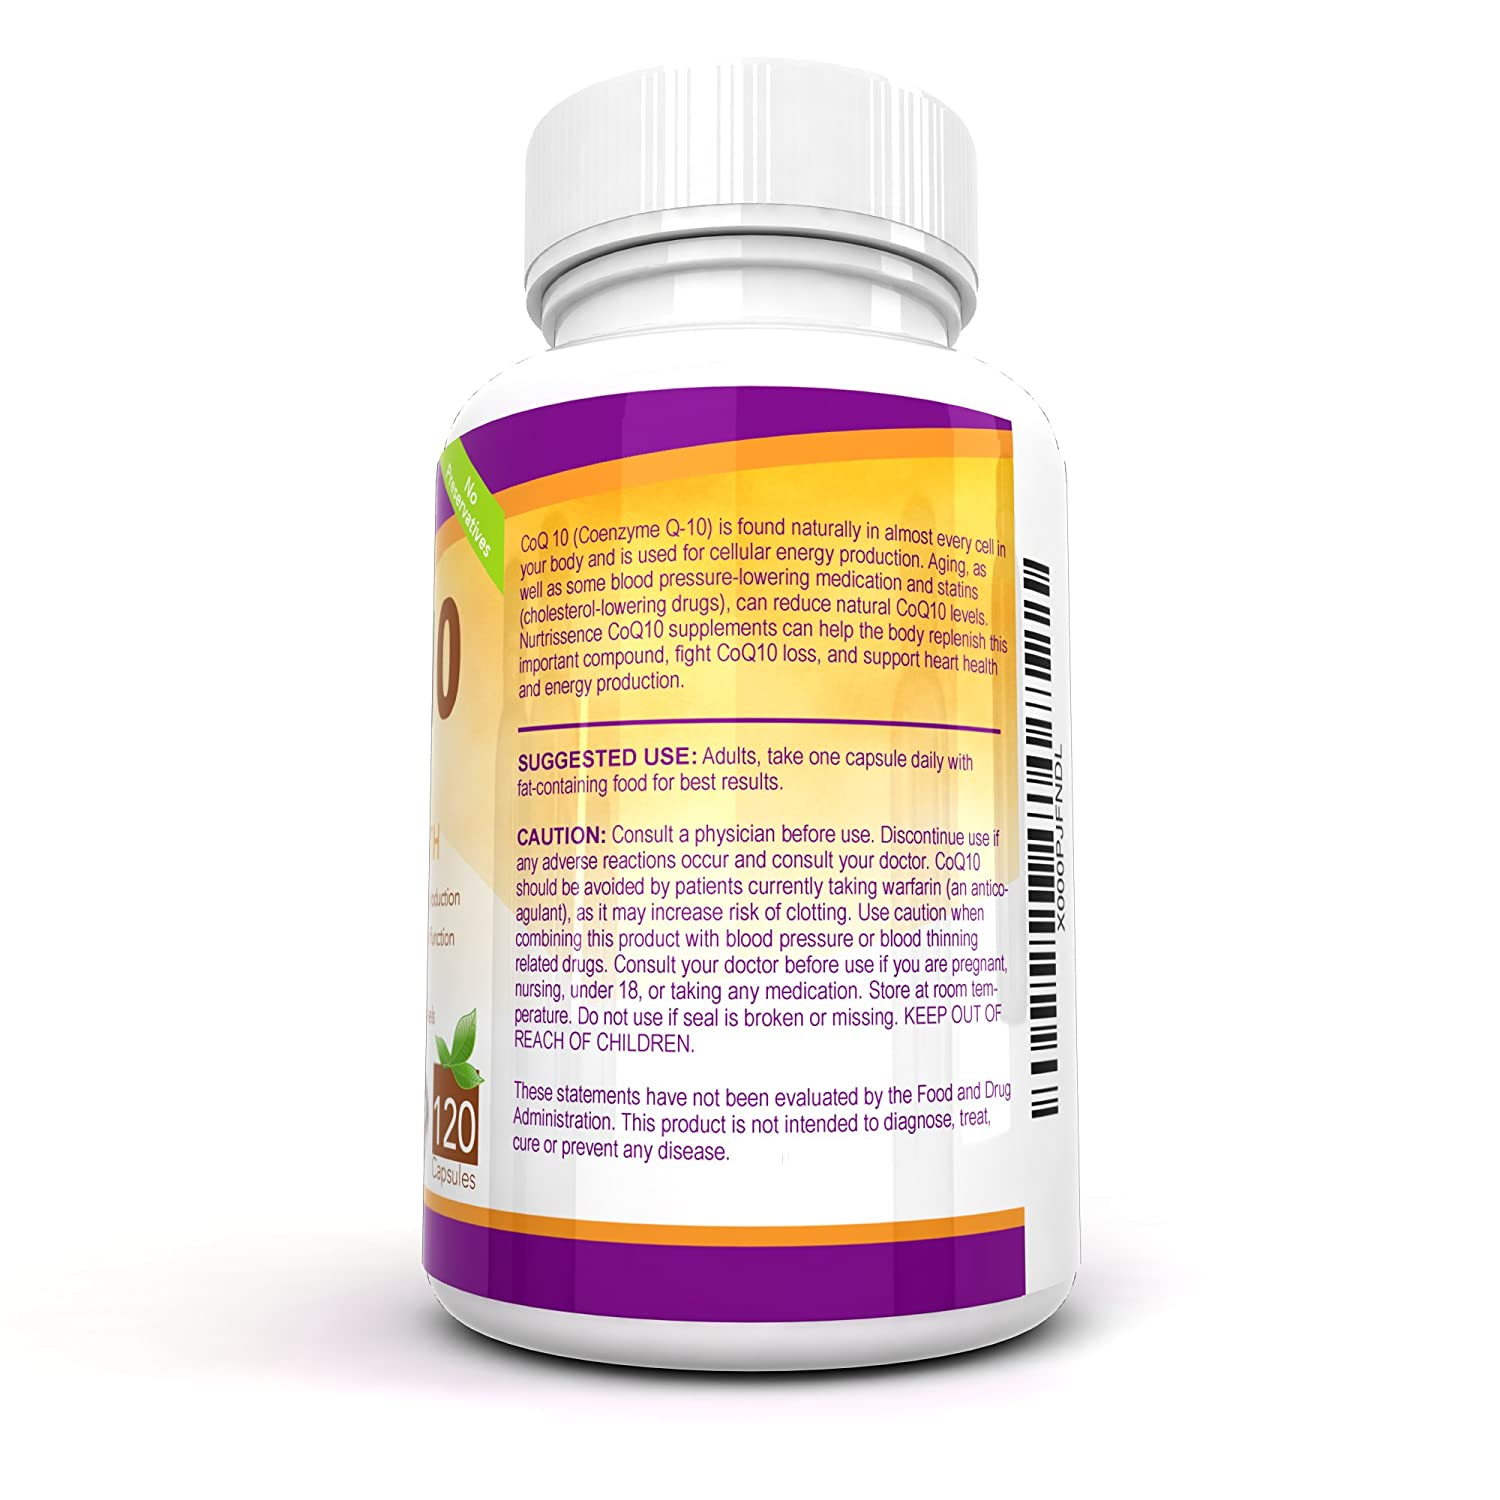 Garcinia cambogia select customer reviews picture 10